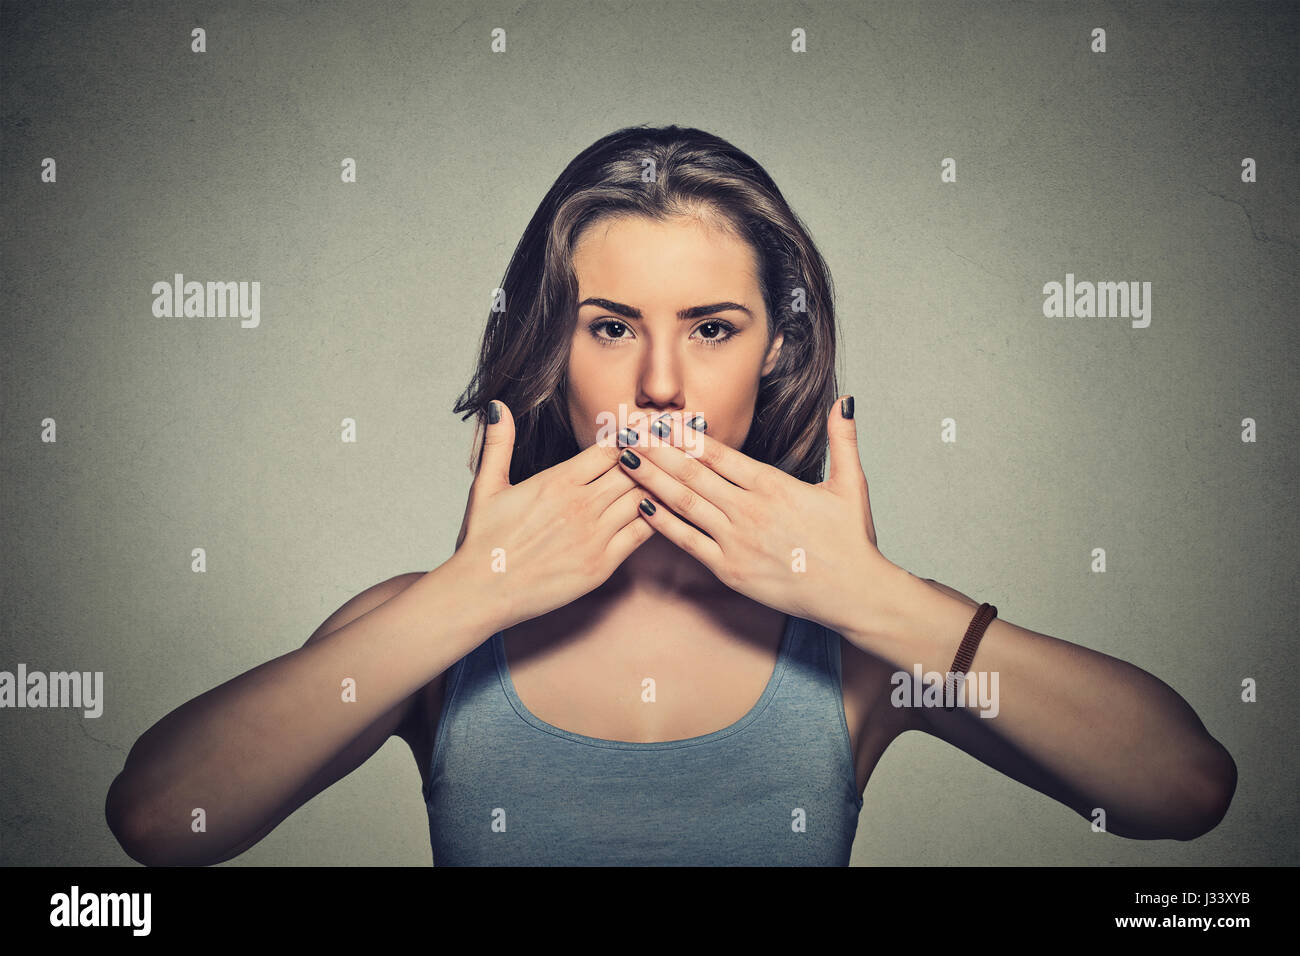 Closeup portrait of young woman covering with hands her mouth isolated on gray wall background Stock Photo